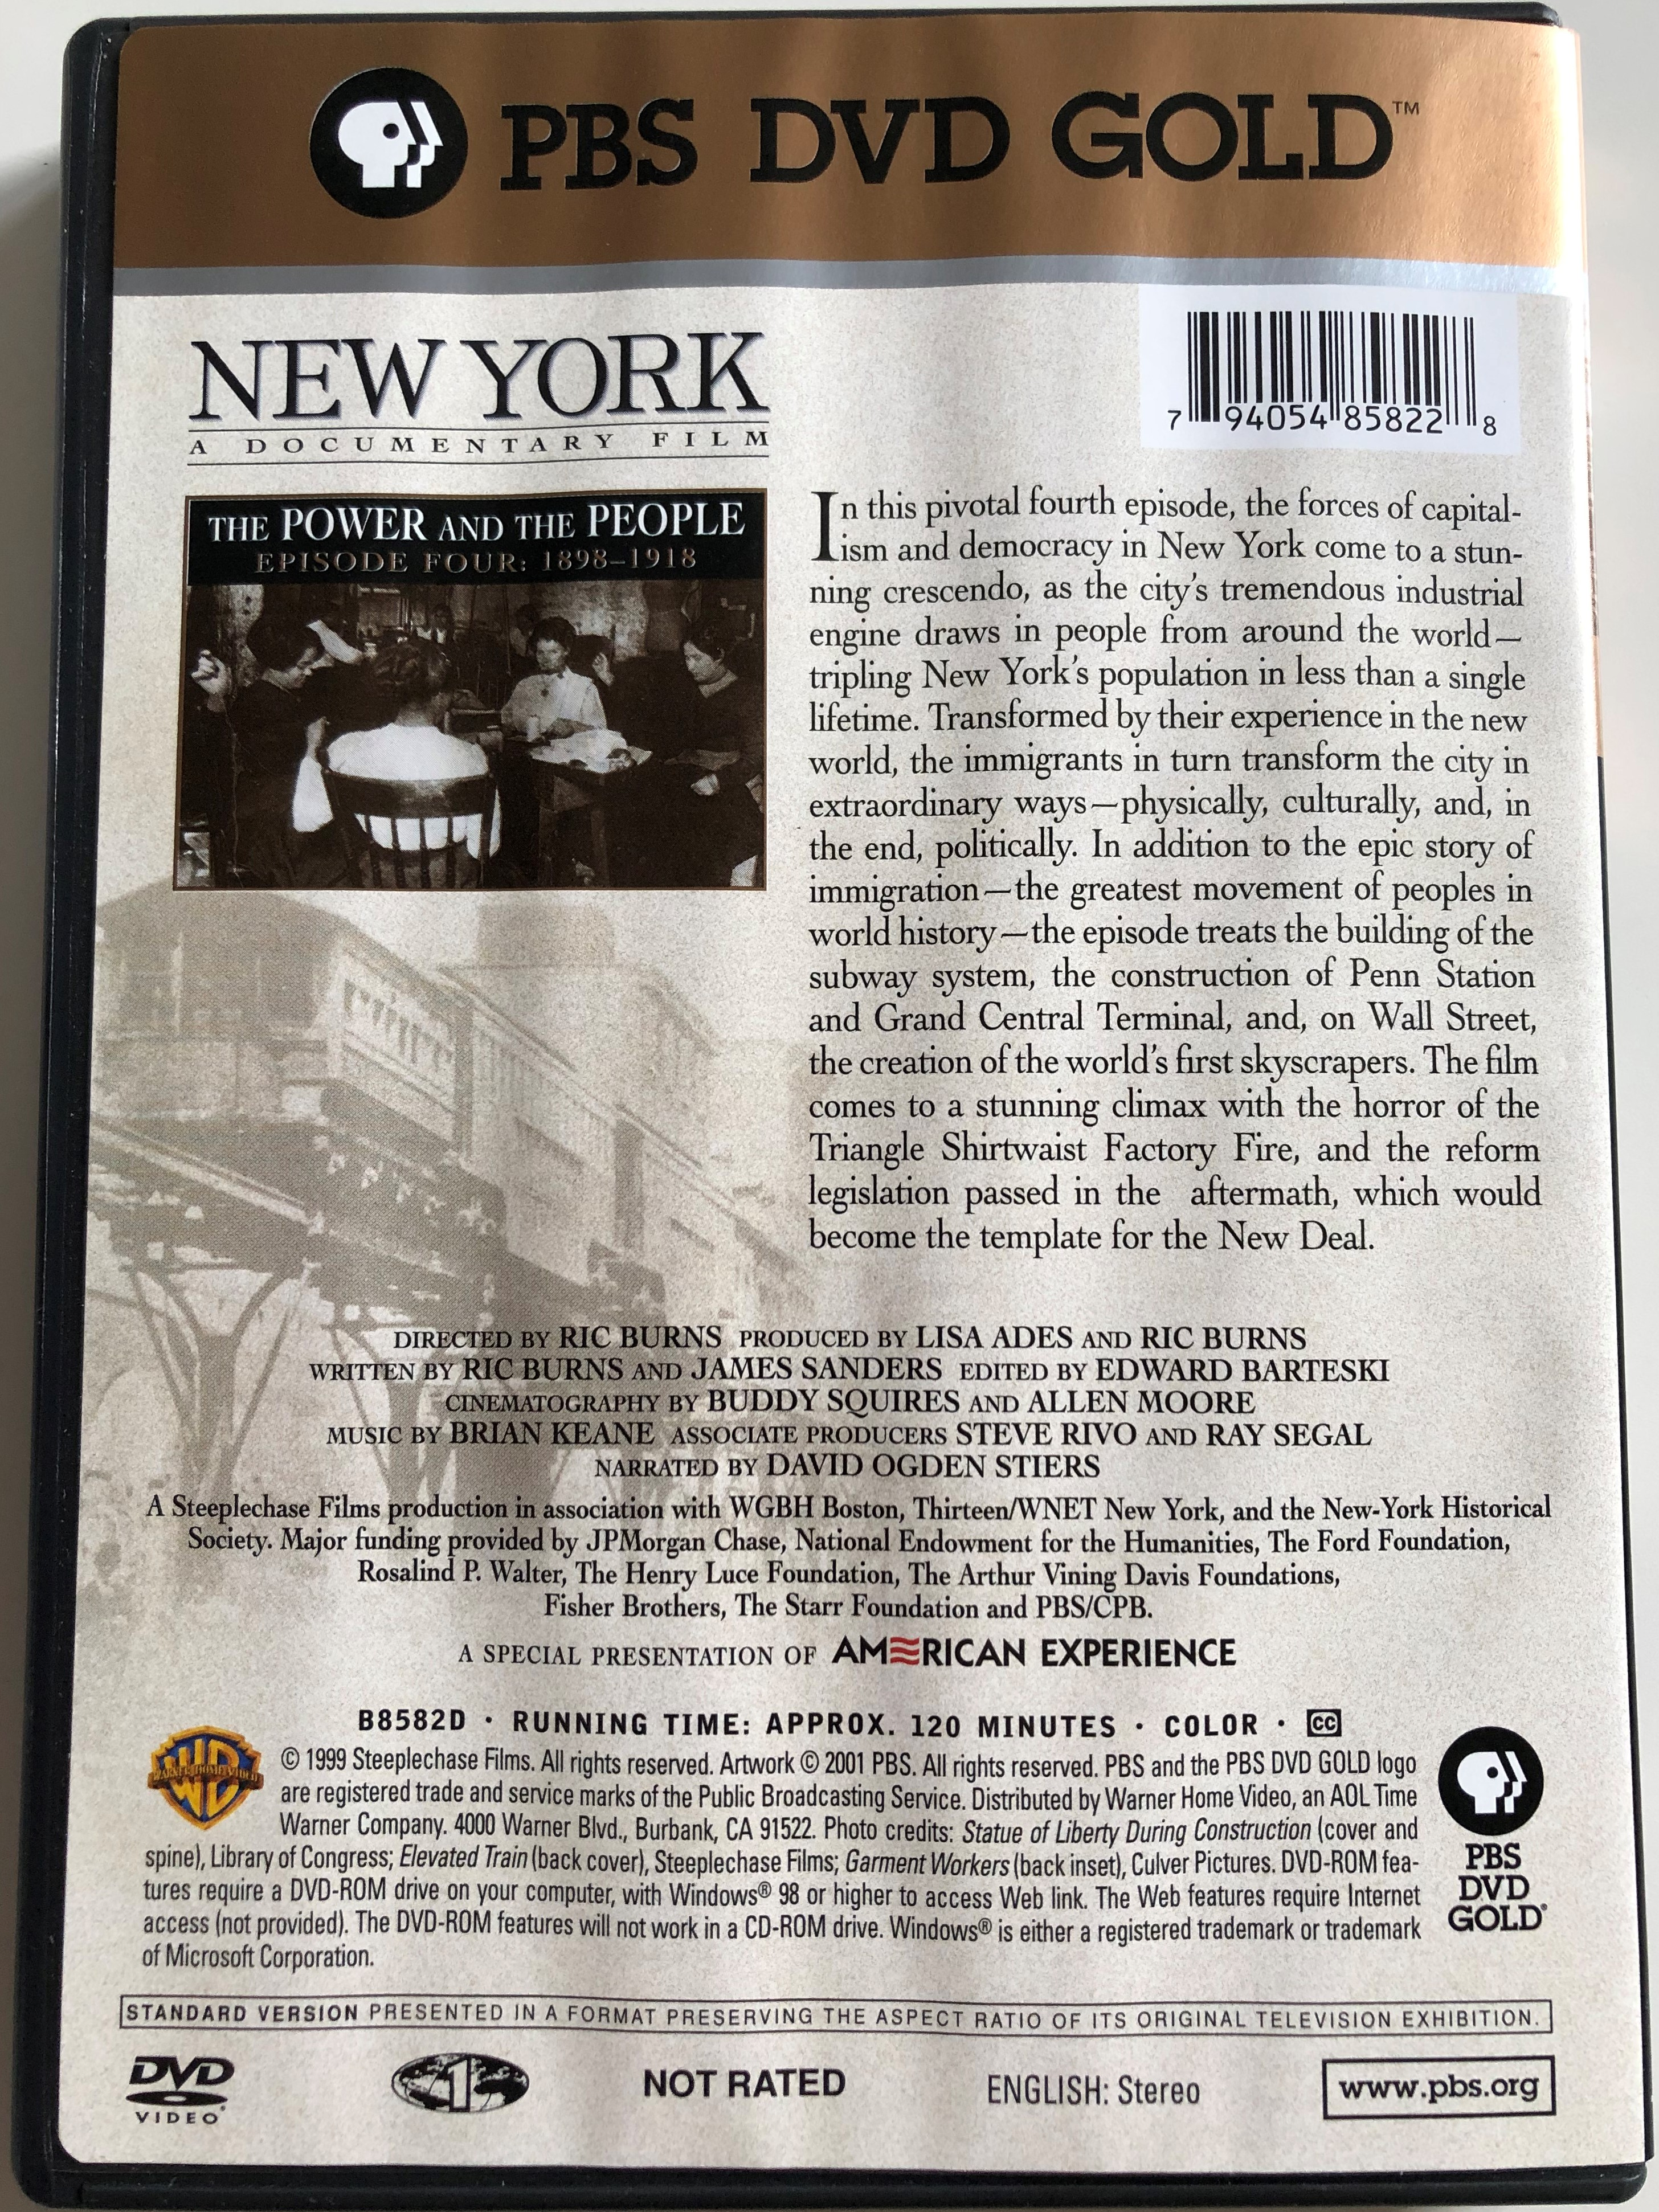 new-york-episode-4-1898-1918-the-power-and-the-people-dvd-1999-directed-by-ric-burns-3.jpg